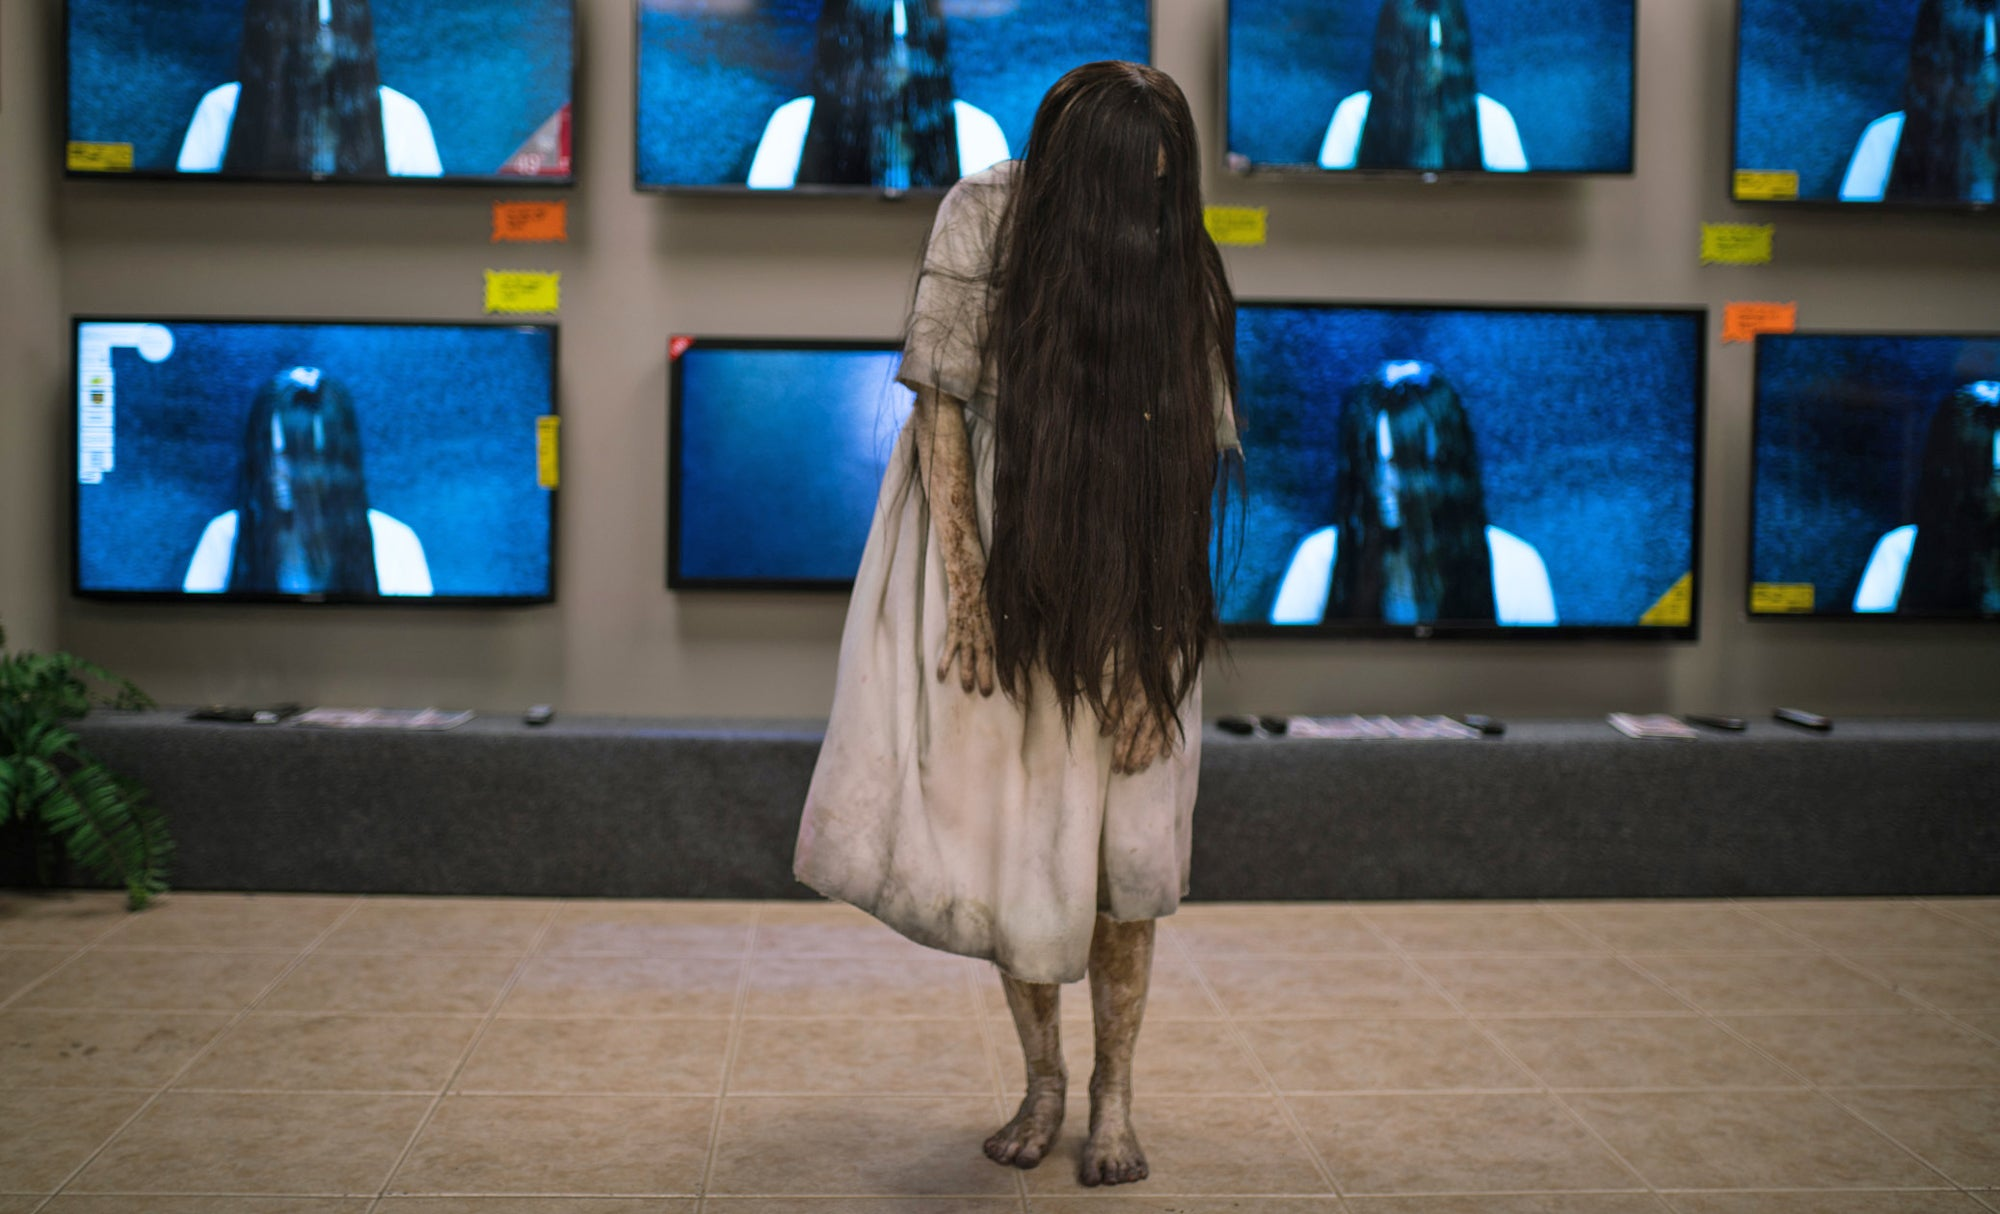 Watch The Ring Girl Crawl Out Of An Electronics Store TV To Terrify Shoppers